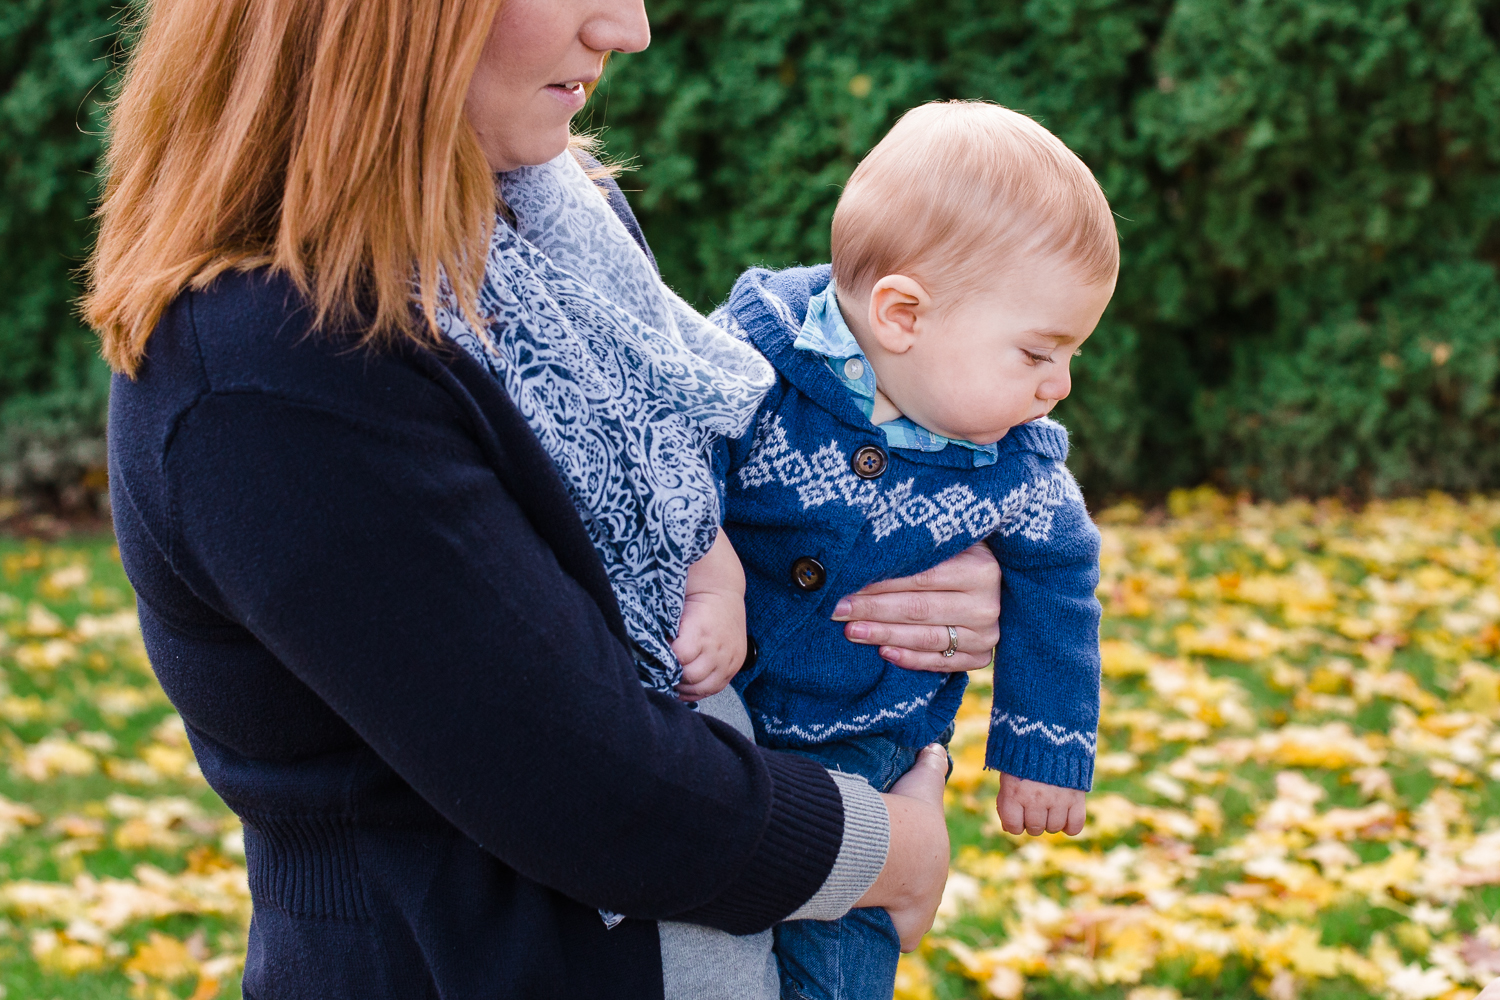 Mother holding her son in a blue sweater